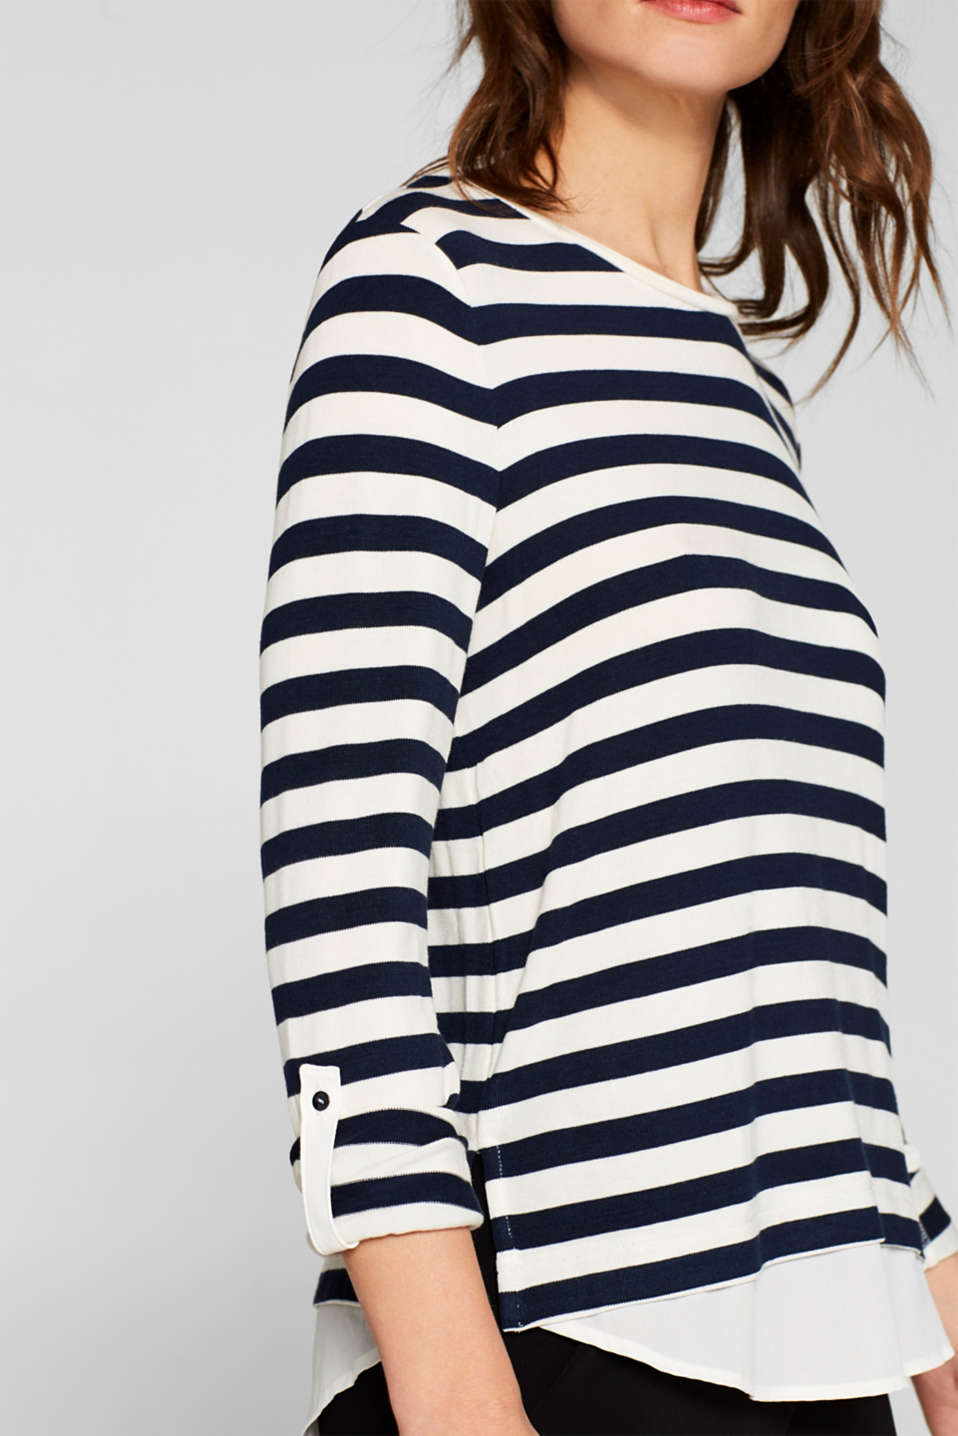 Striped stretch top in a layered look, NAVY, detail image number 2